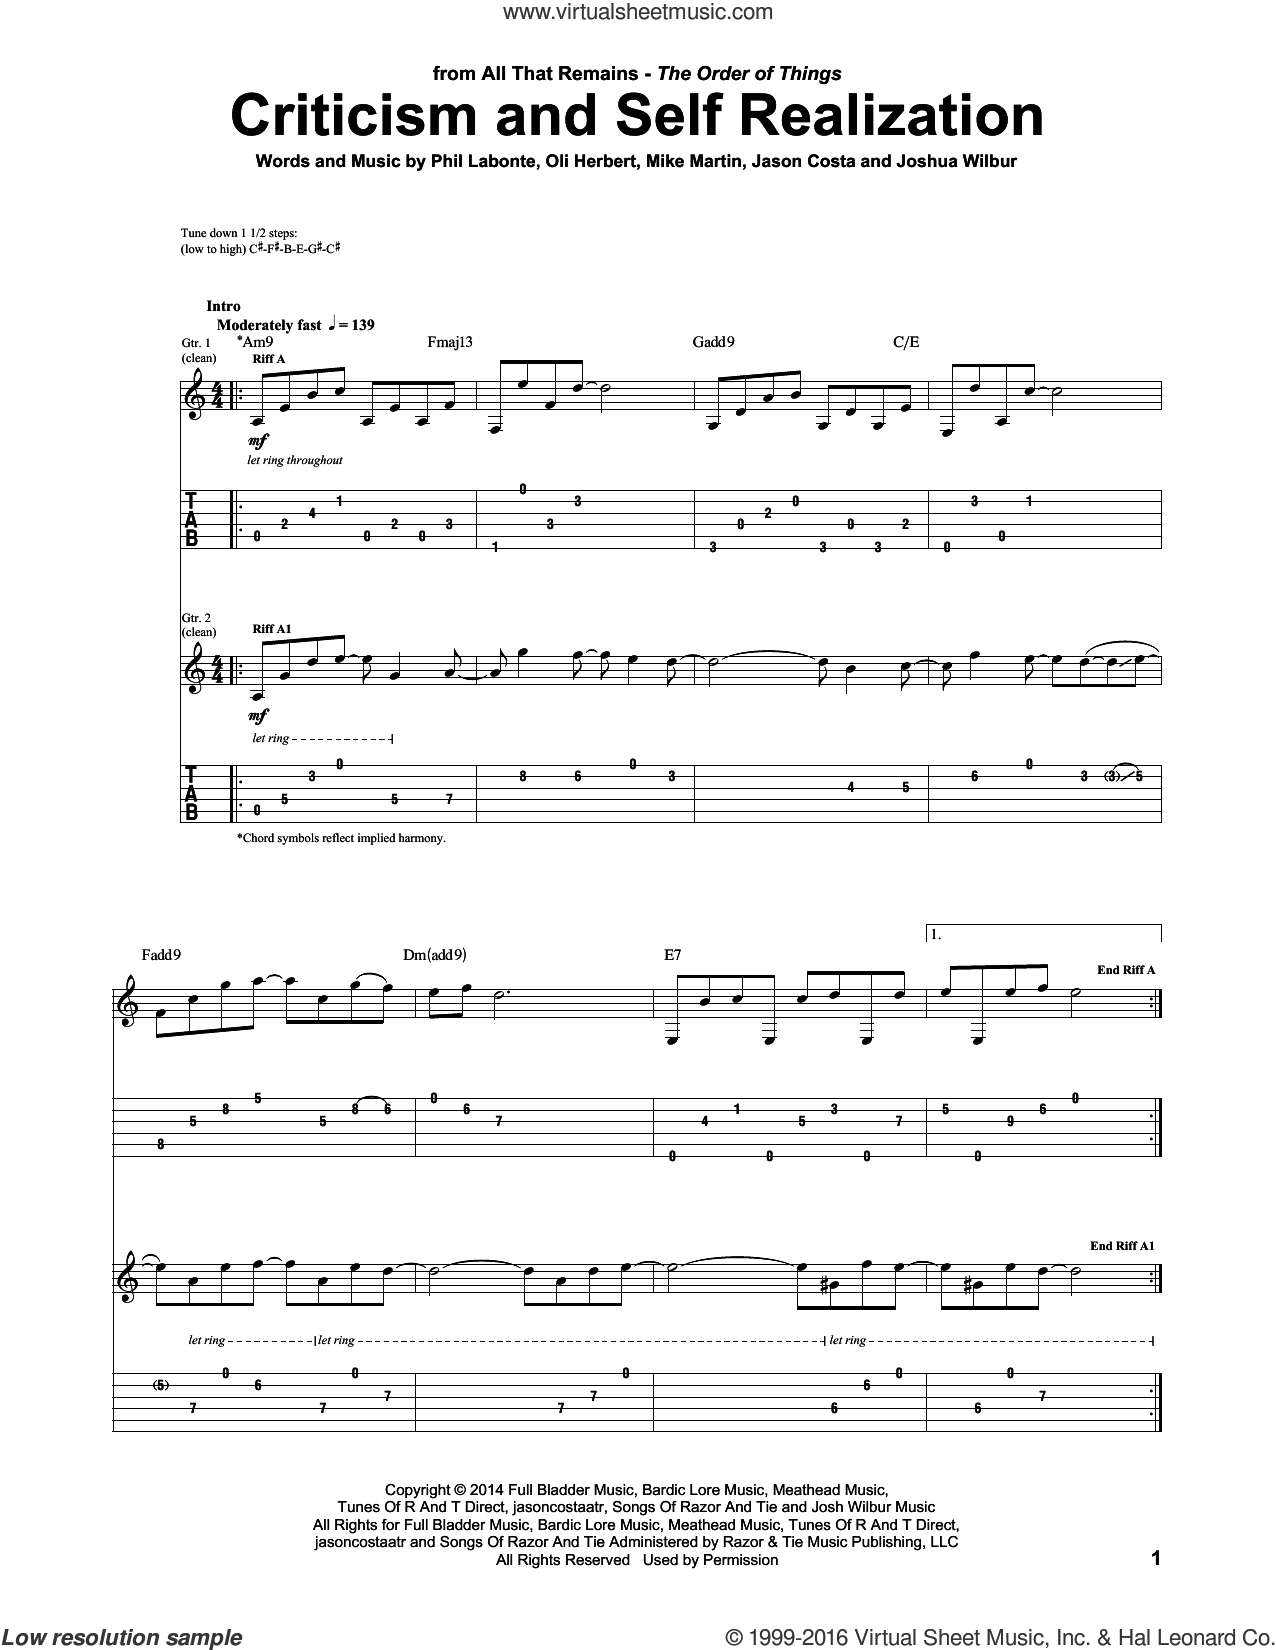 Criticism And Self Realization sheet music for guitar (tablature) by Phil Labonte, All That Remains and Mike Martin. Score Image Preview.